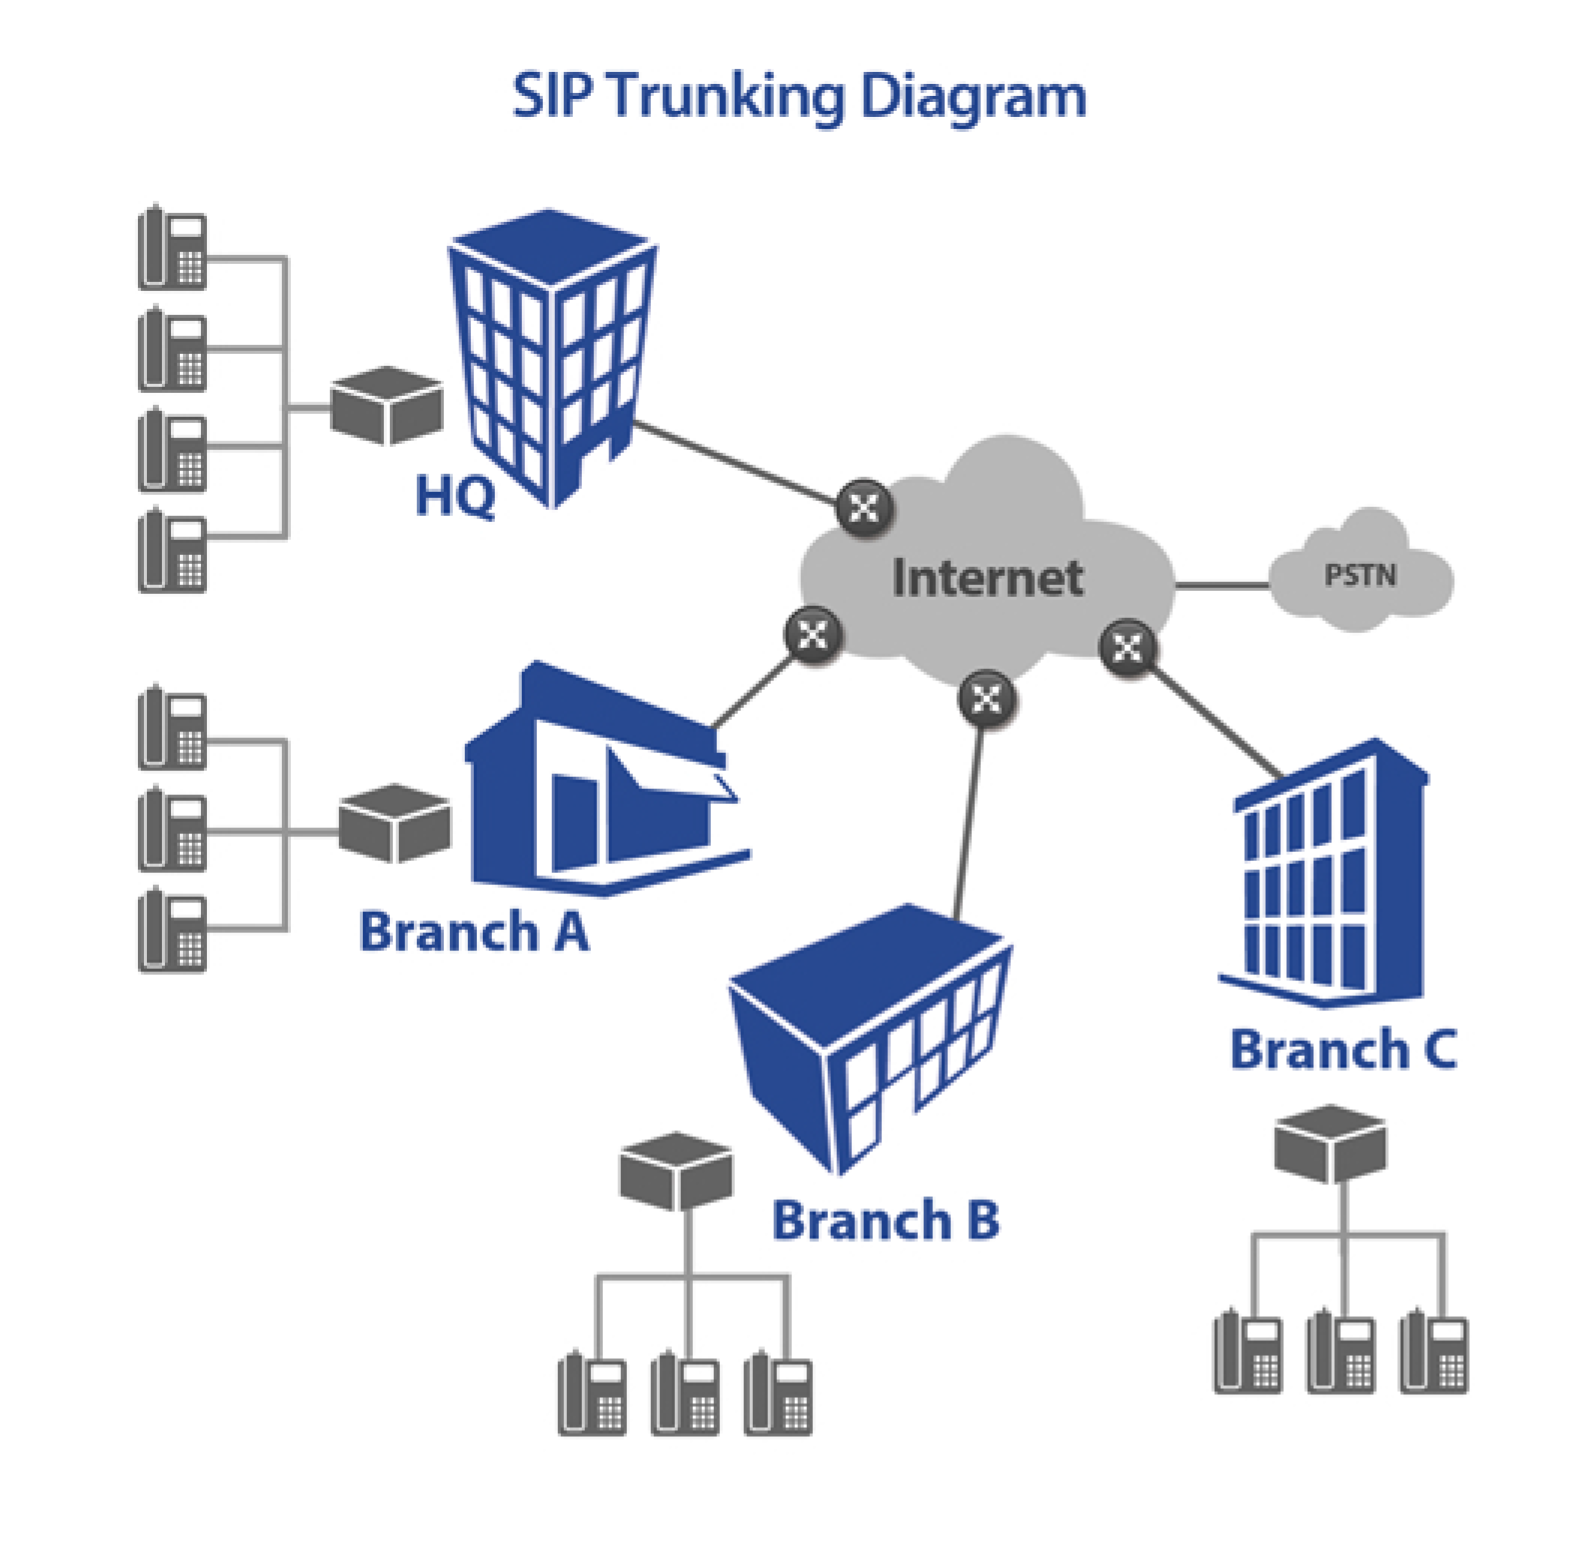 Sip Trunk Diagram Multi Site Trusted Wiring Voip Velocity Trunking Services And Solutions For Business Analog